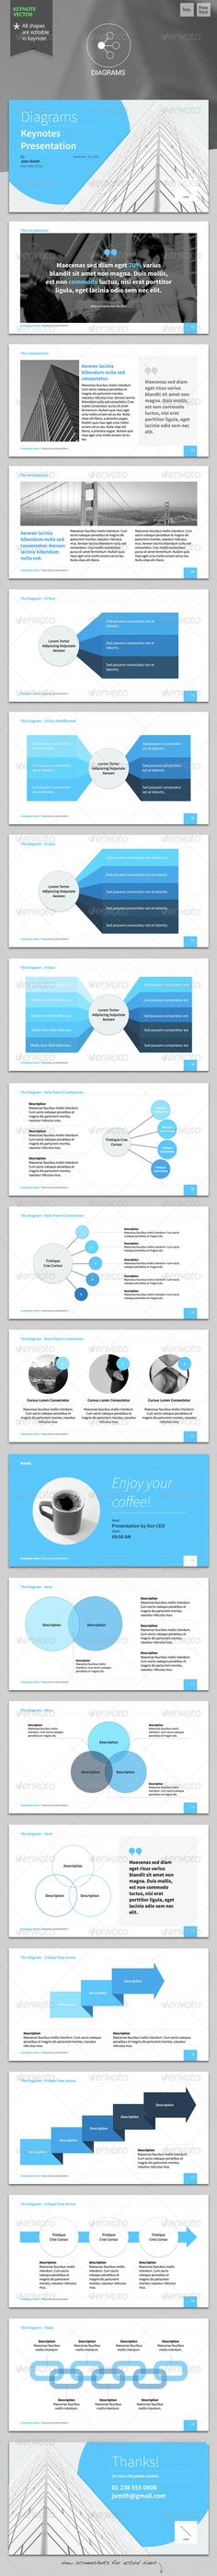 Diagrams  Keynote Template — Keynote KEY #key #diagram • Available here → https://graphicriver.net/item/diagrams-keynote-template/6065324?ref=pxcr